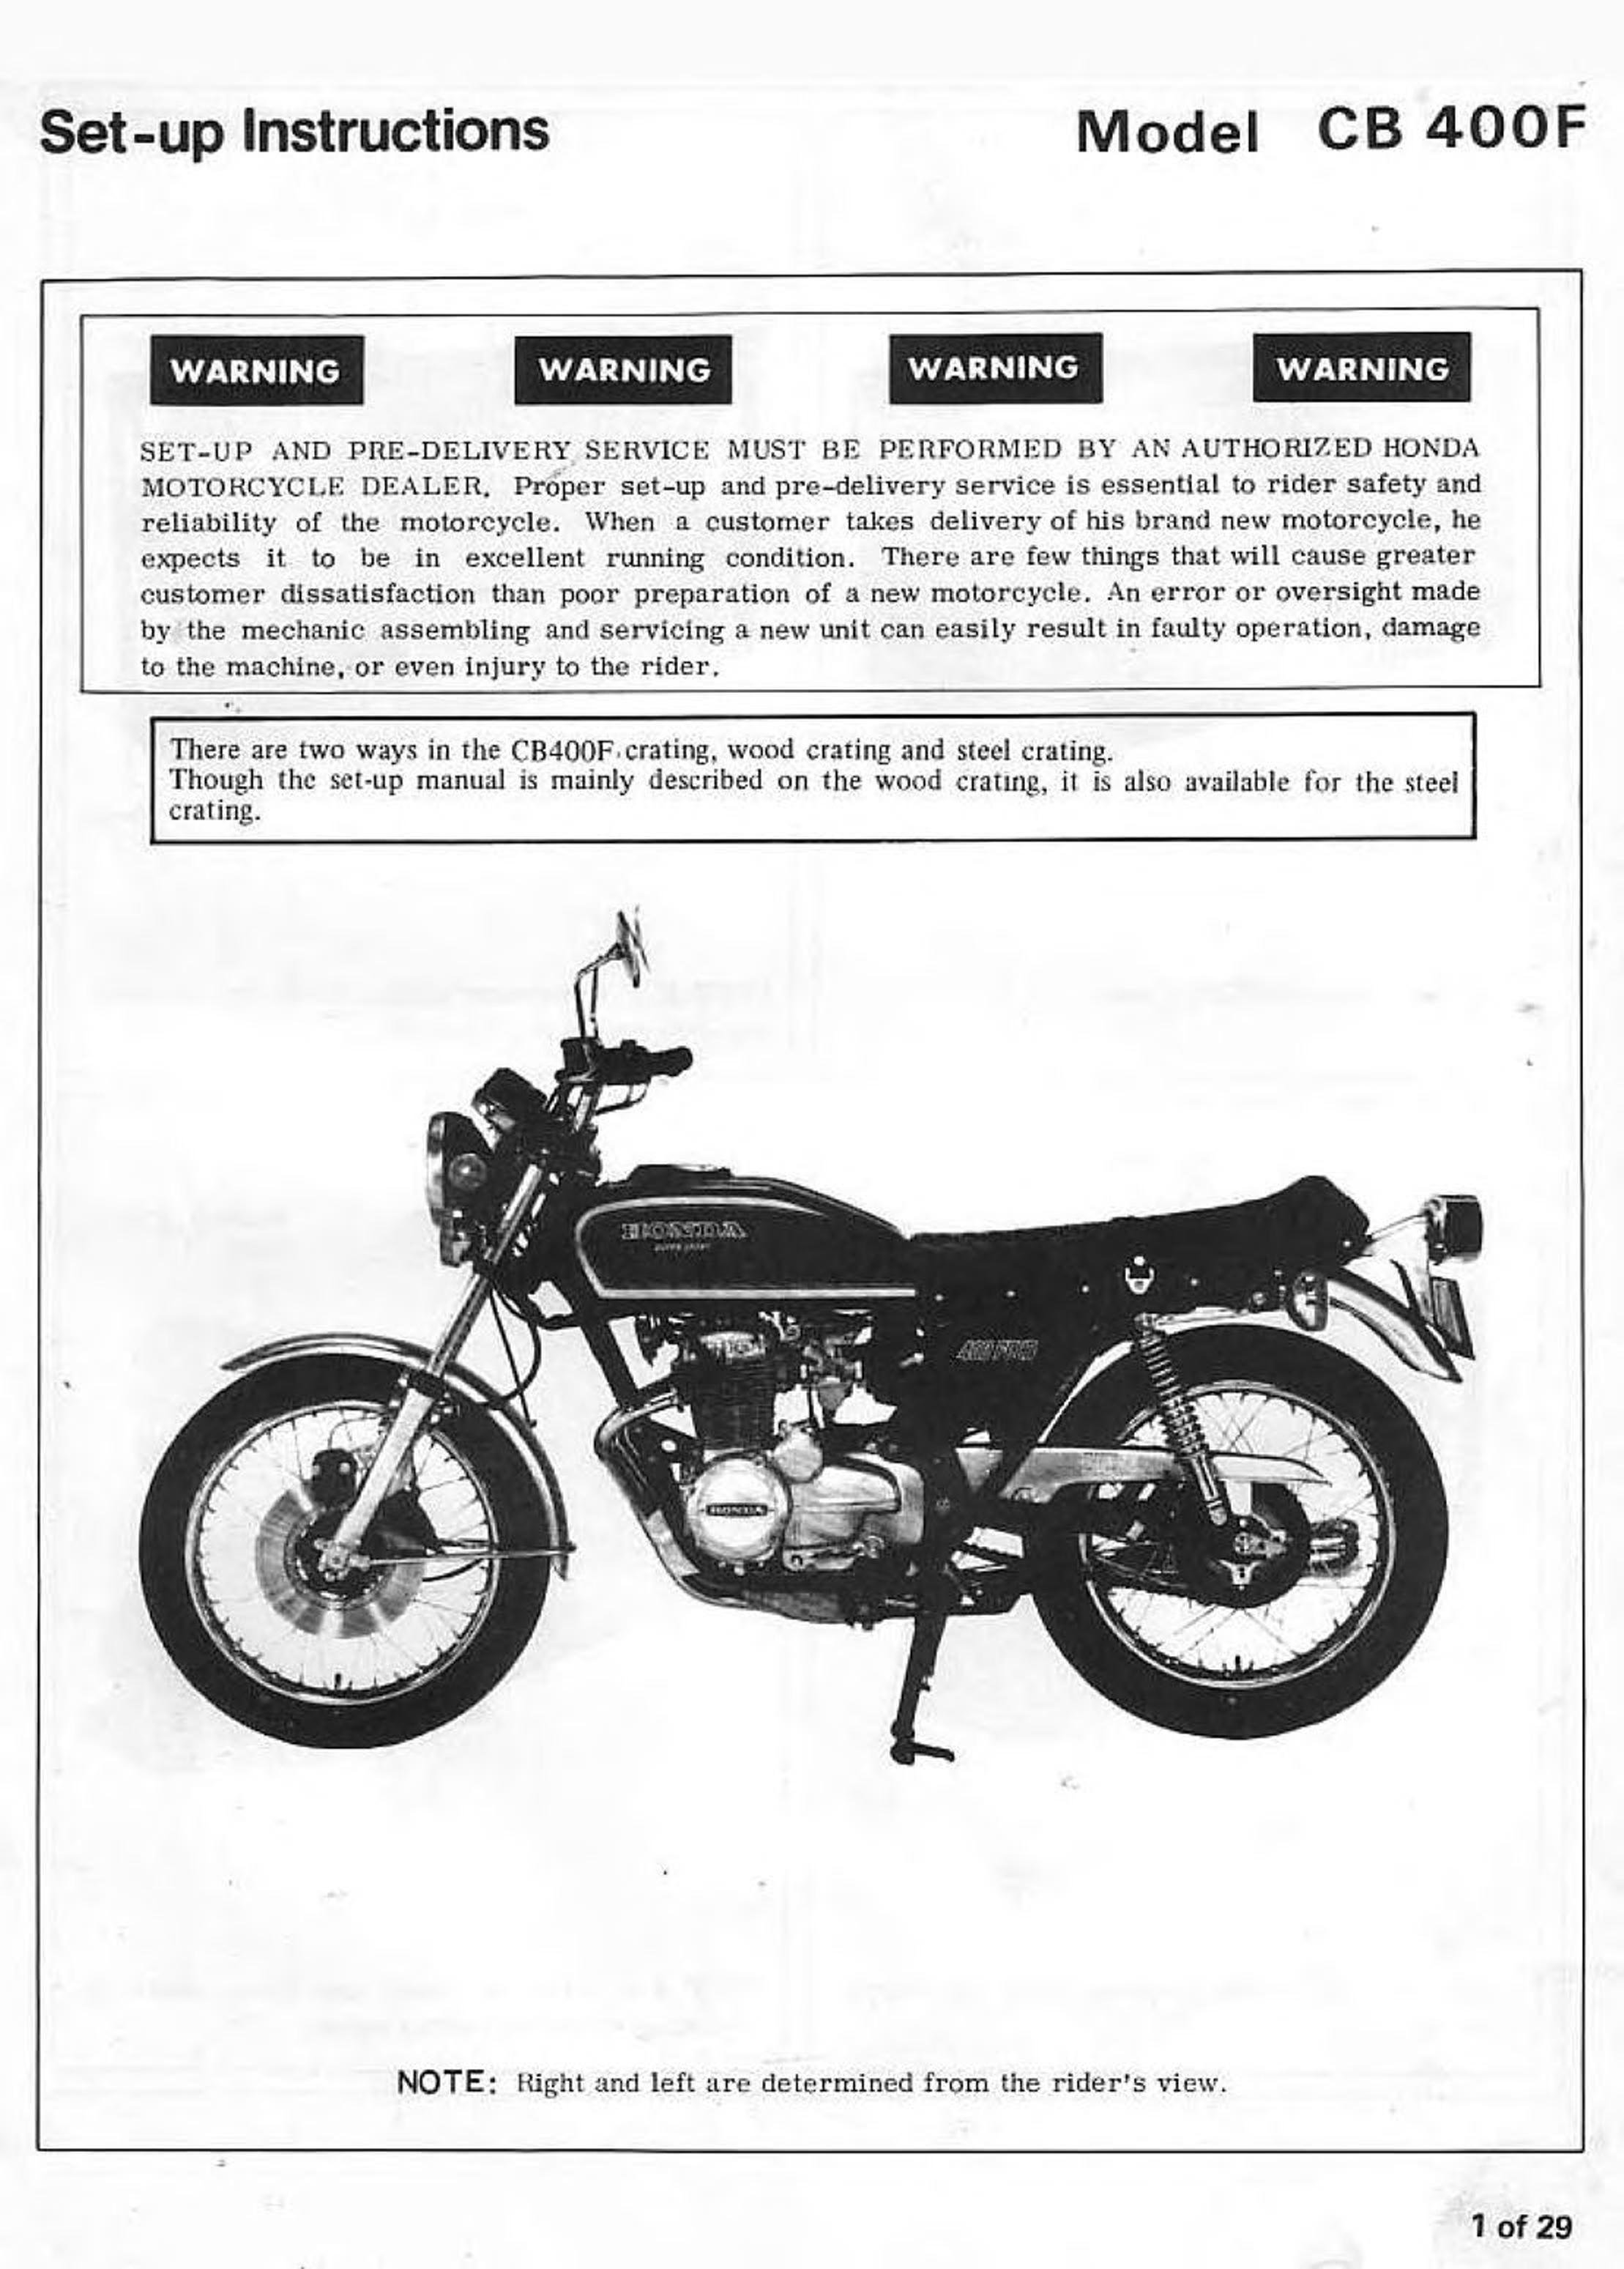 Setup Manual for Honda CB400F